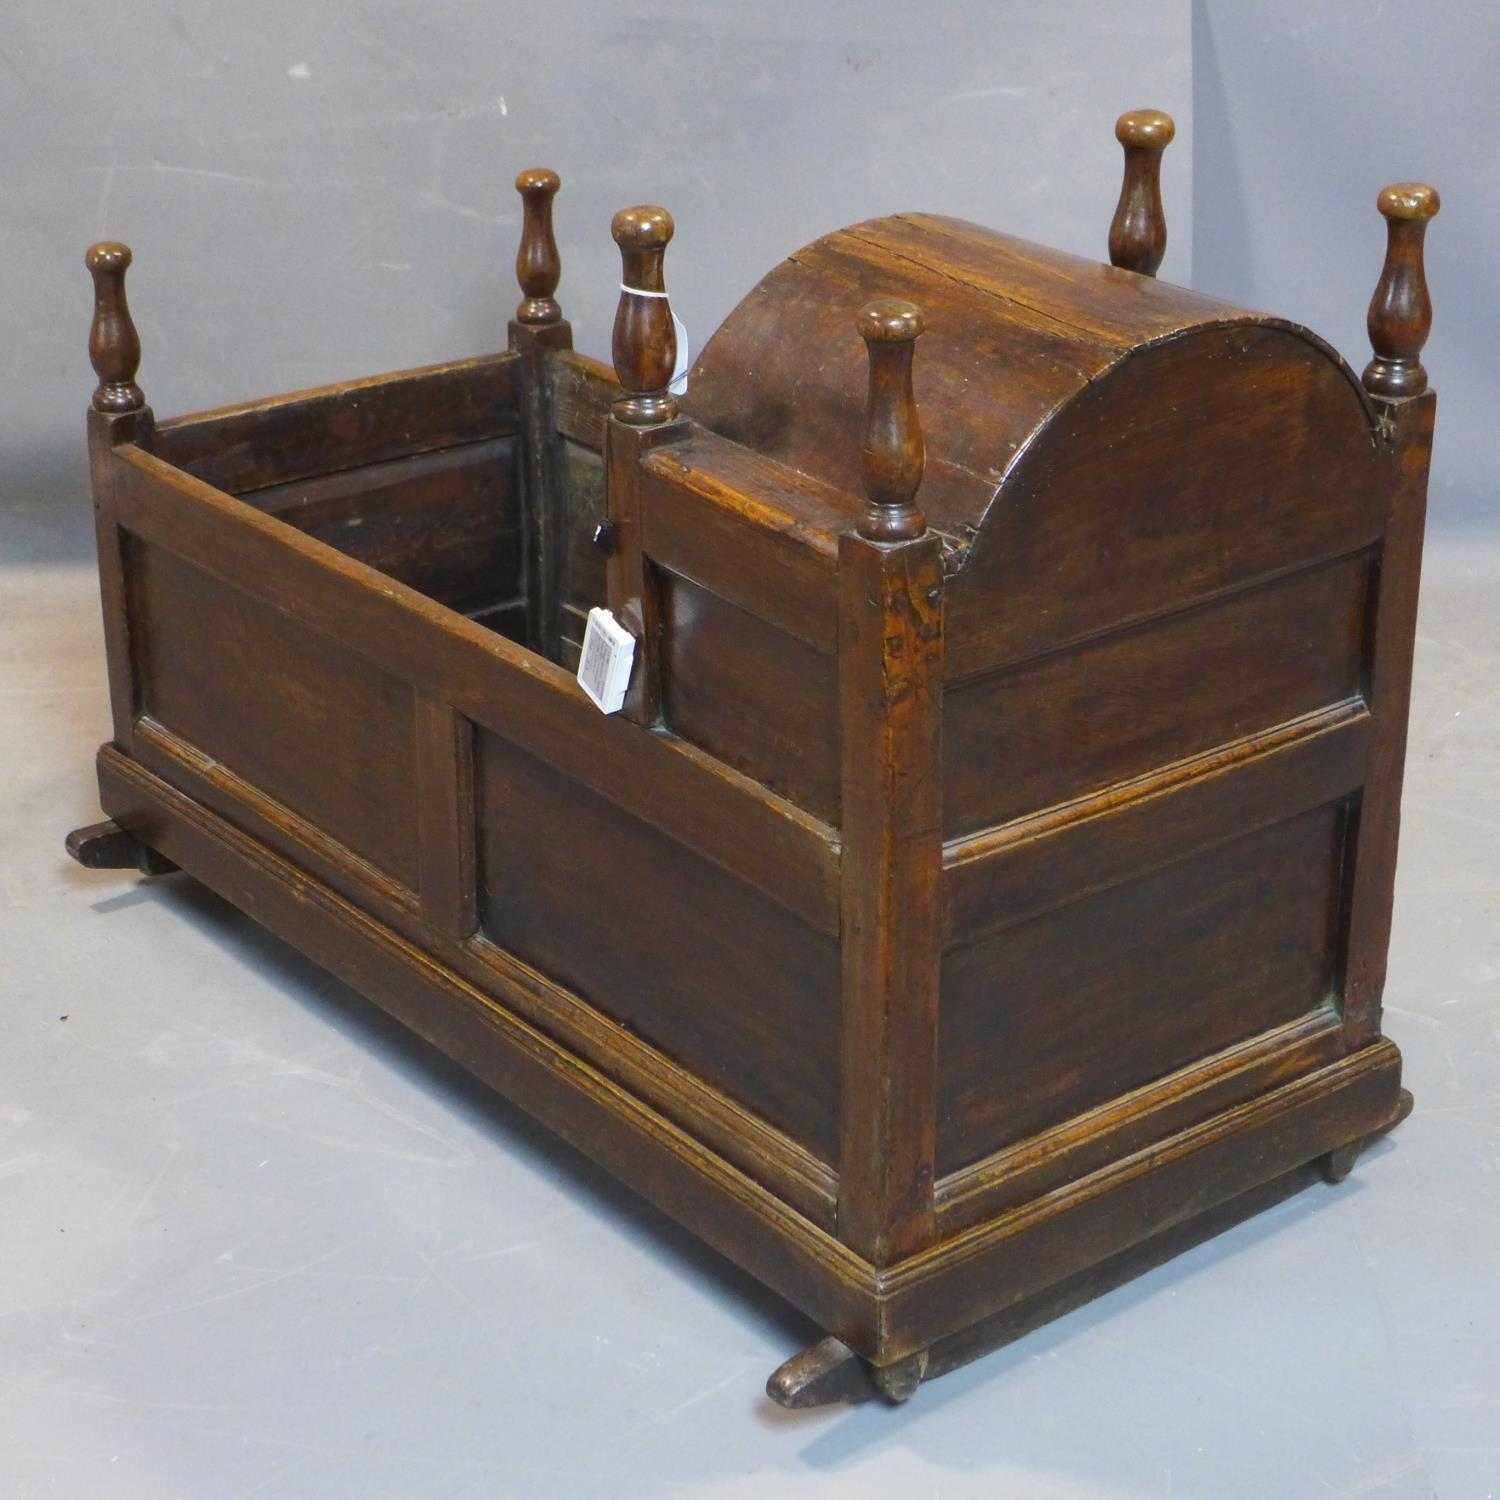 Lot 23 - An 18th century oak cradle, with turned finials and panelled sides, H.75 W.104 D.60cm